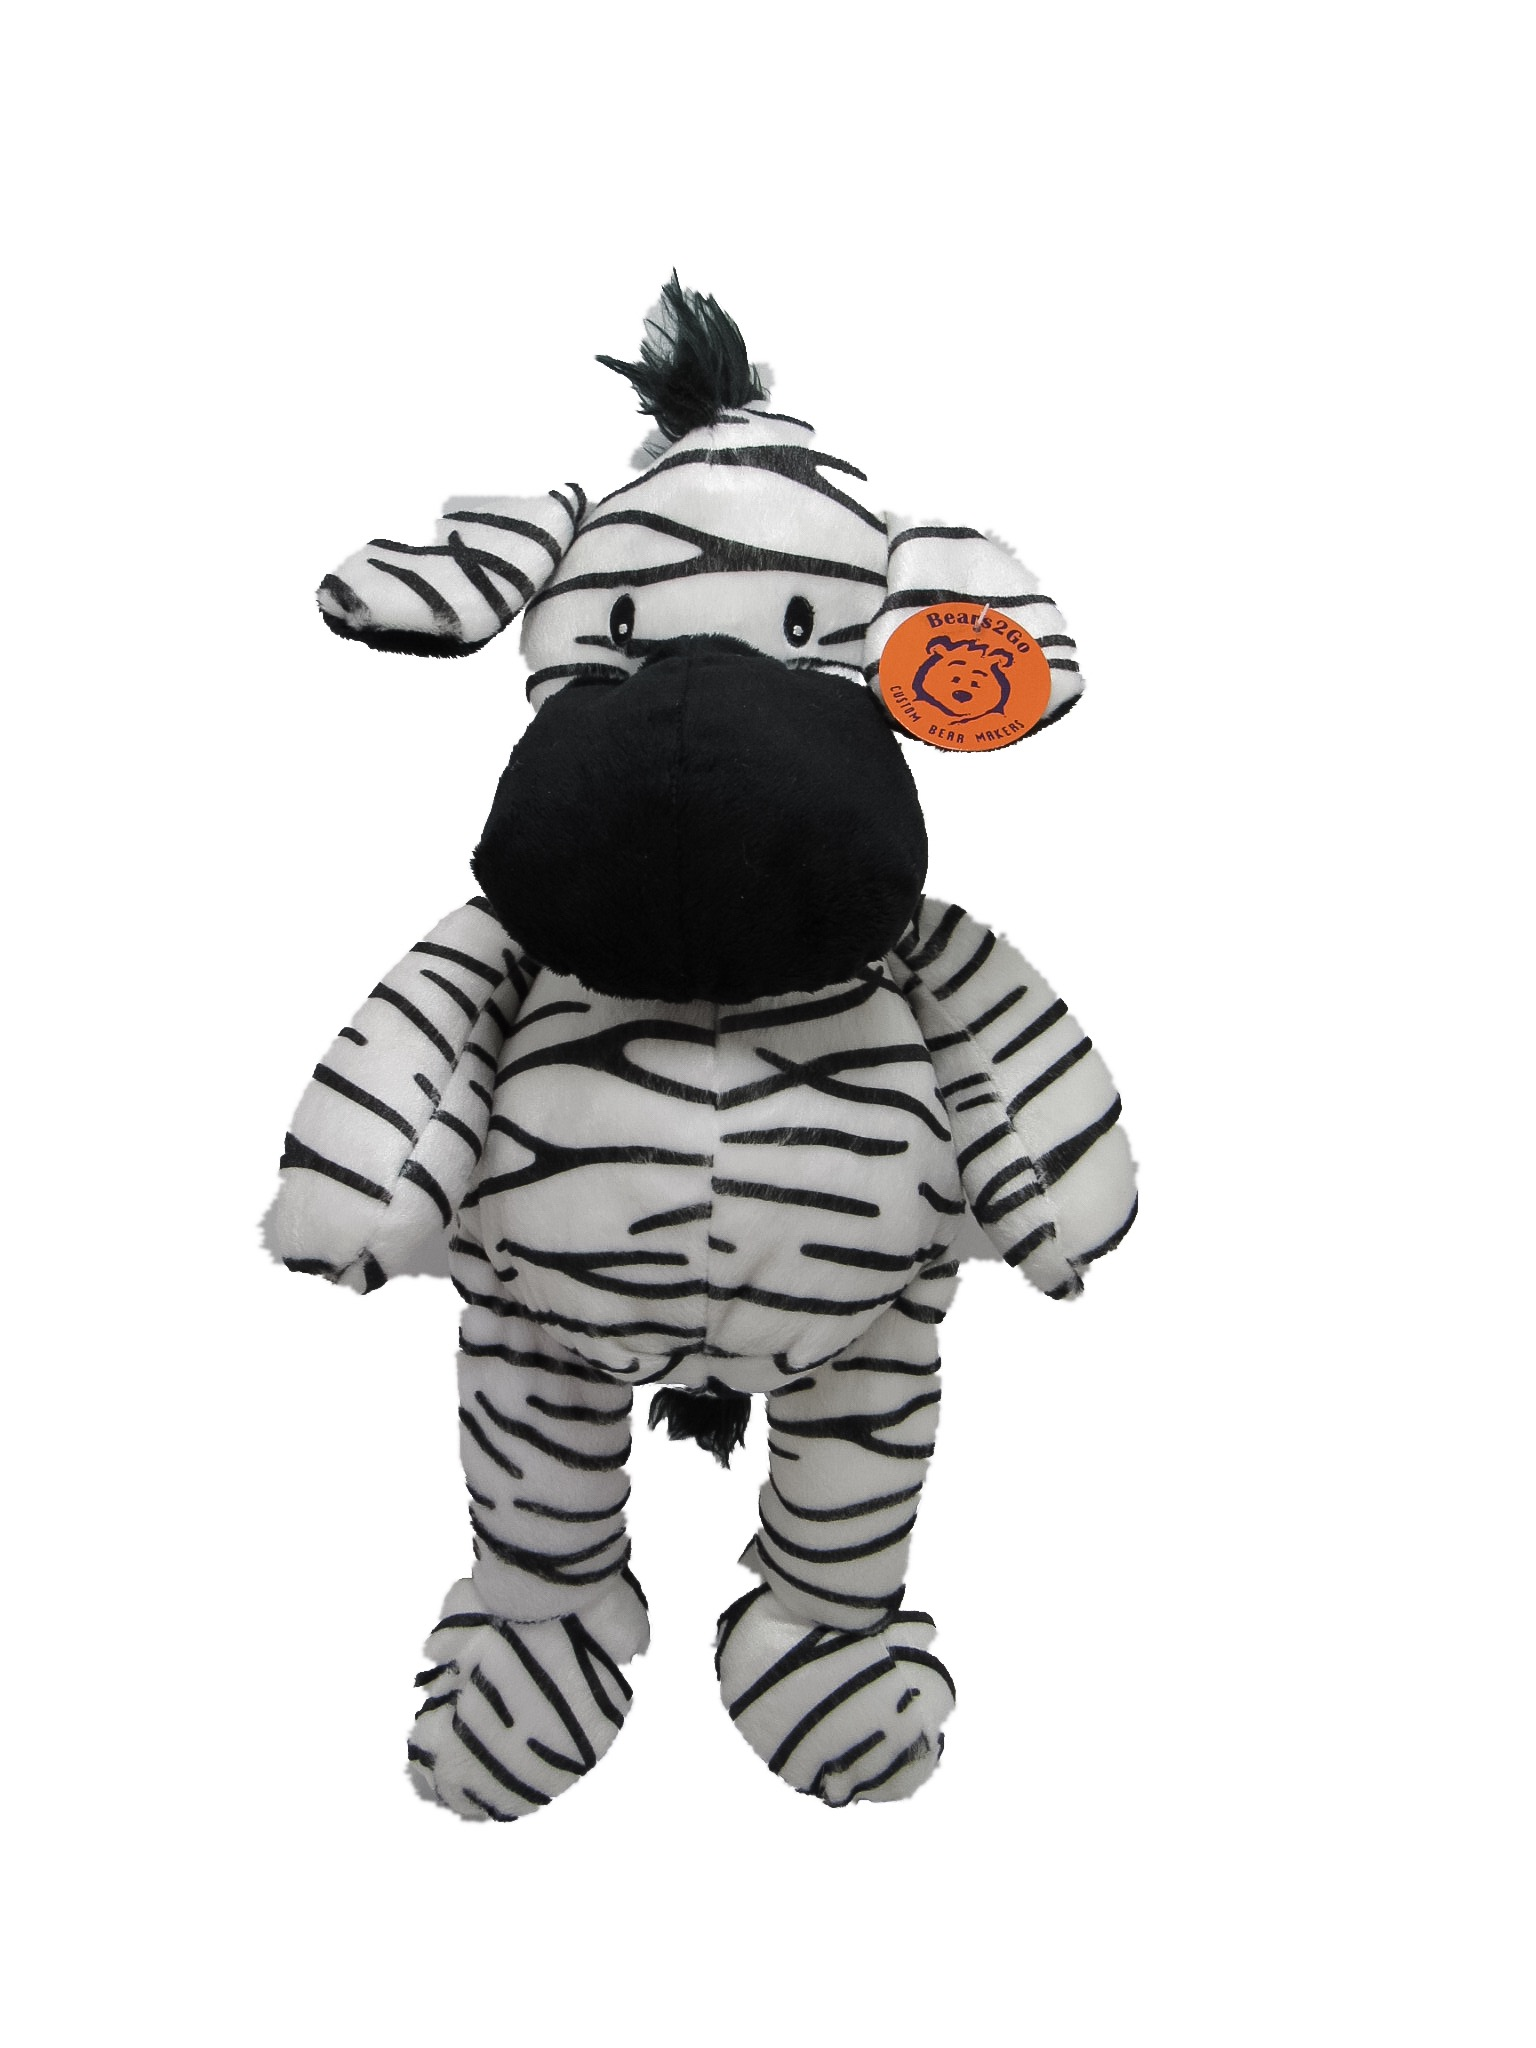 Zeb the Zebra